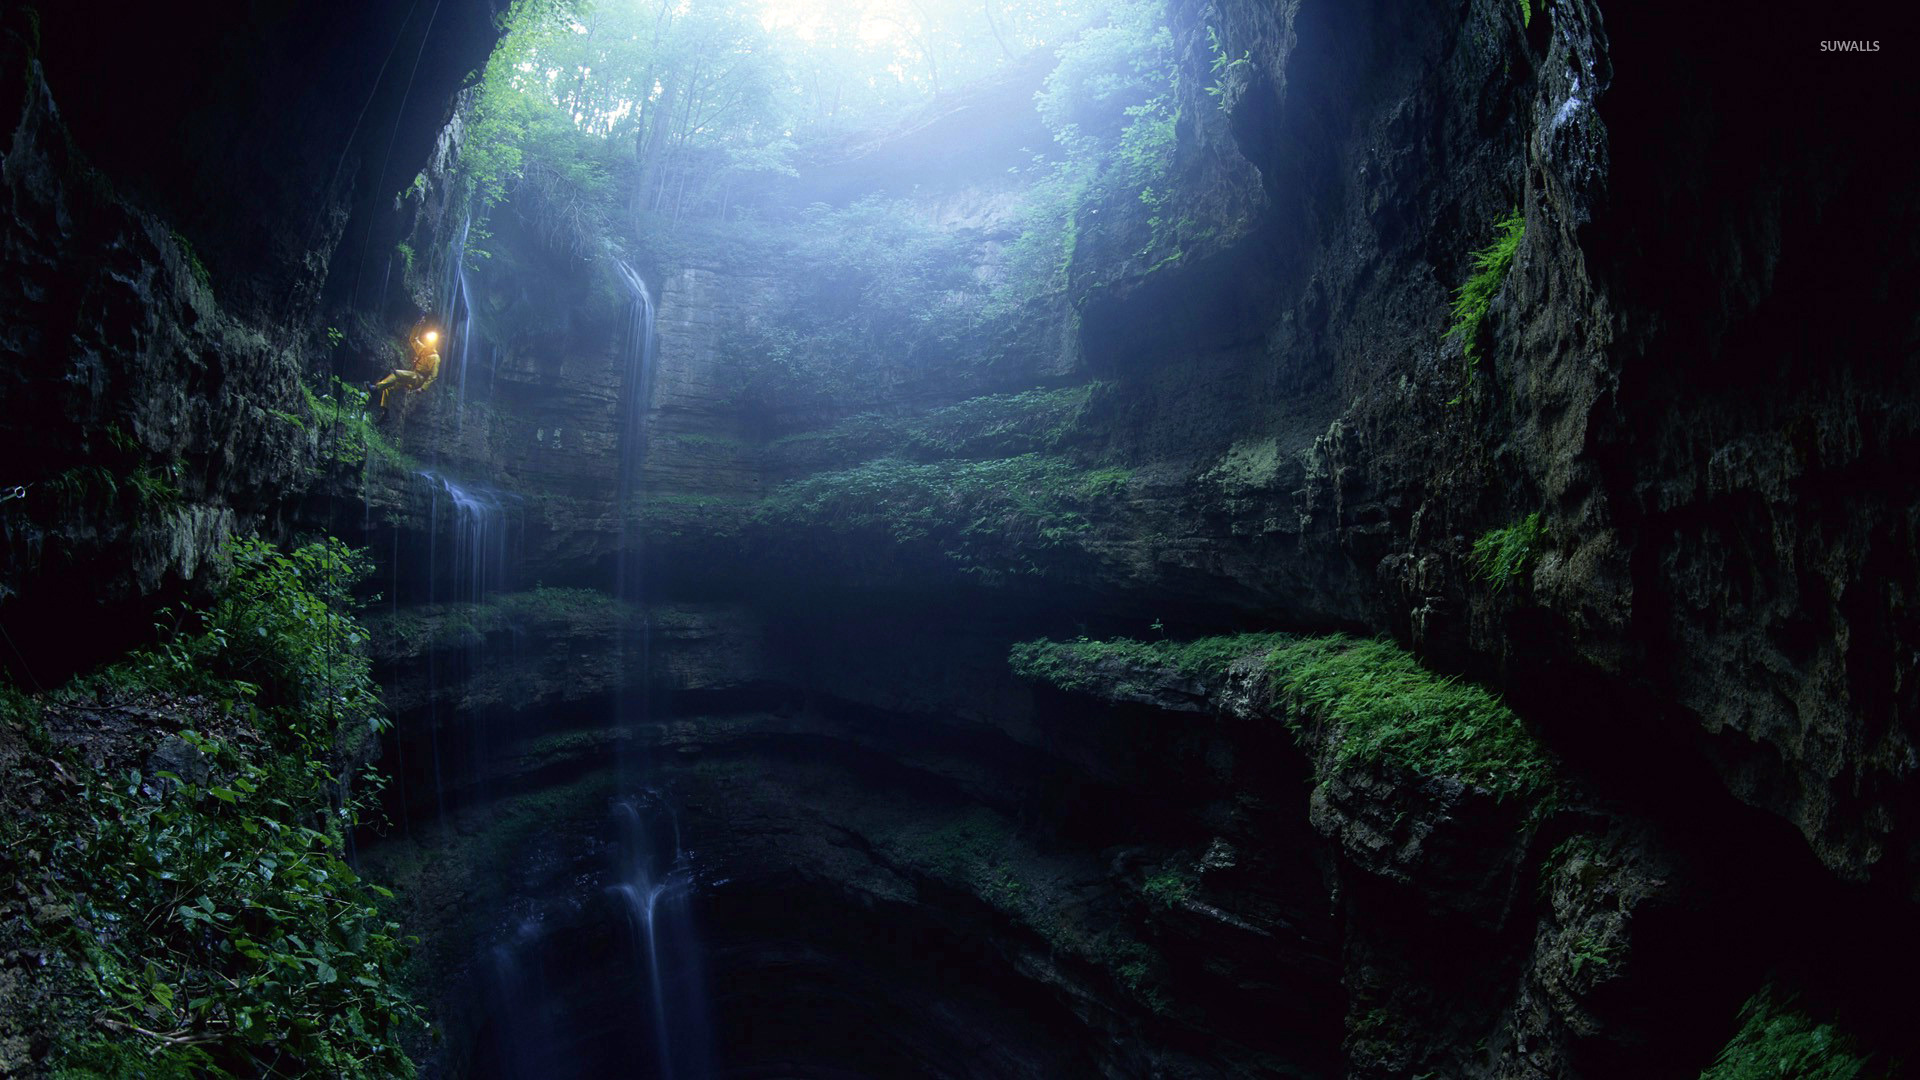 Jungle Cave wallpaper   Photography wallpapers   16497 1920x1080